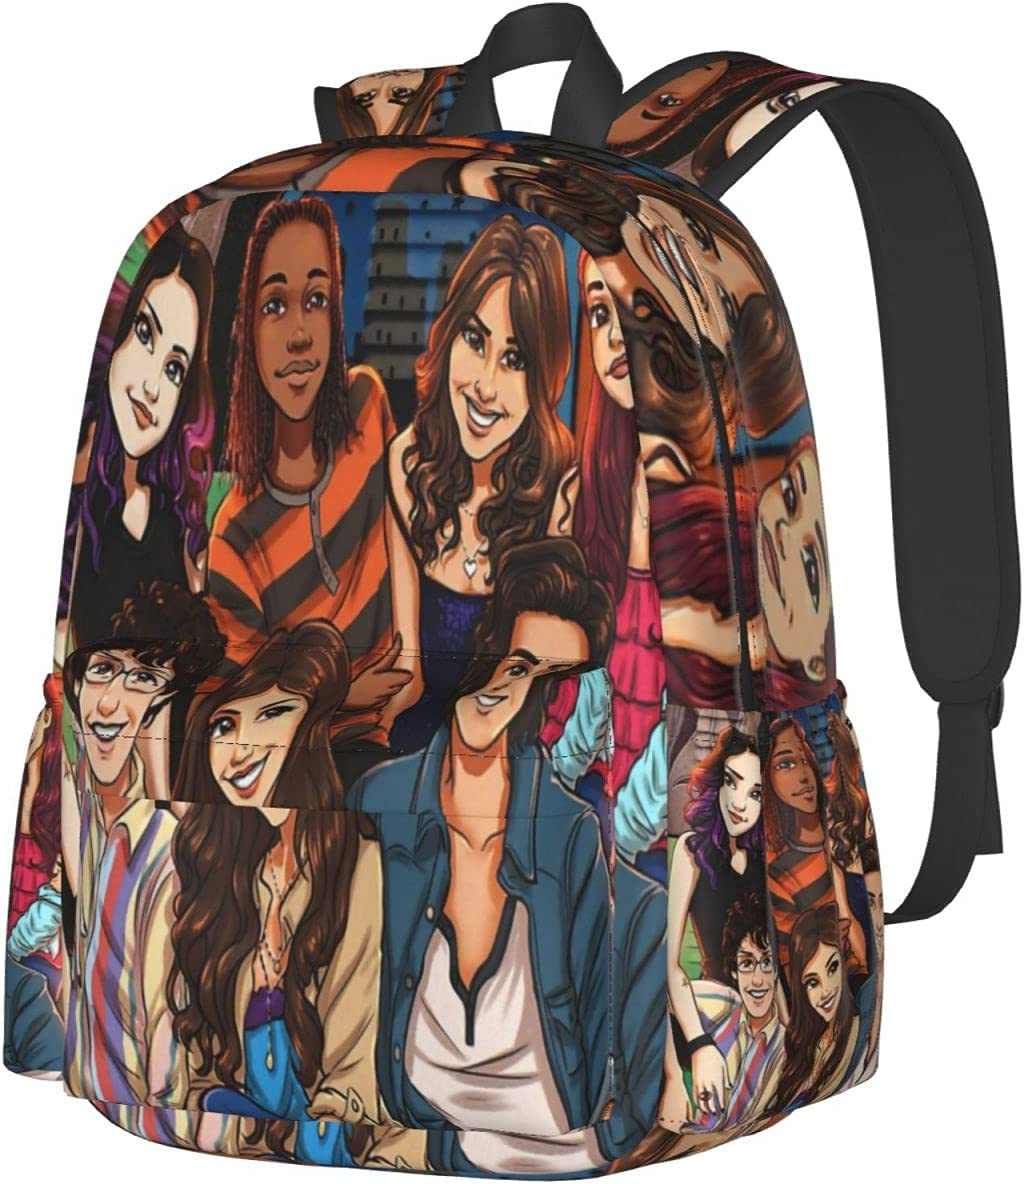 Victorious Backpack with Adjustable At the price of surprise Double Stra Shoulder Shoulde 2021 spring and summer new